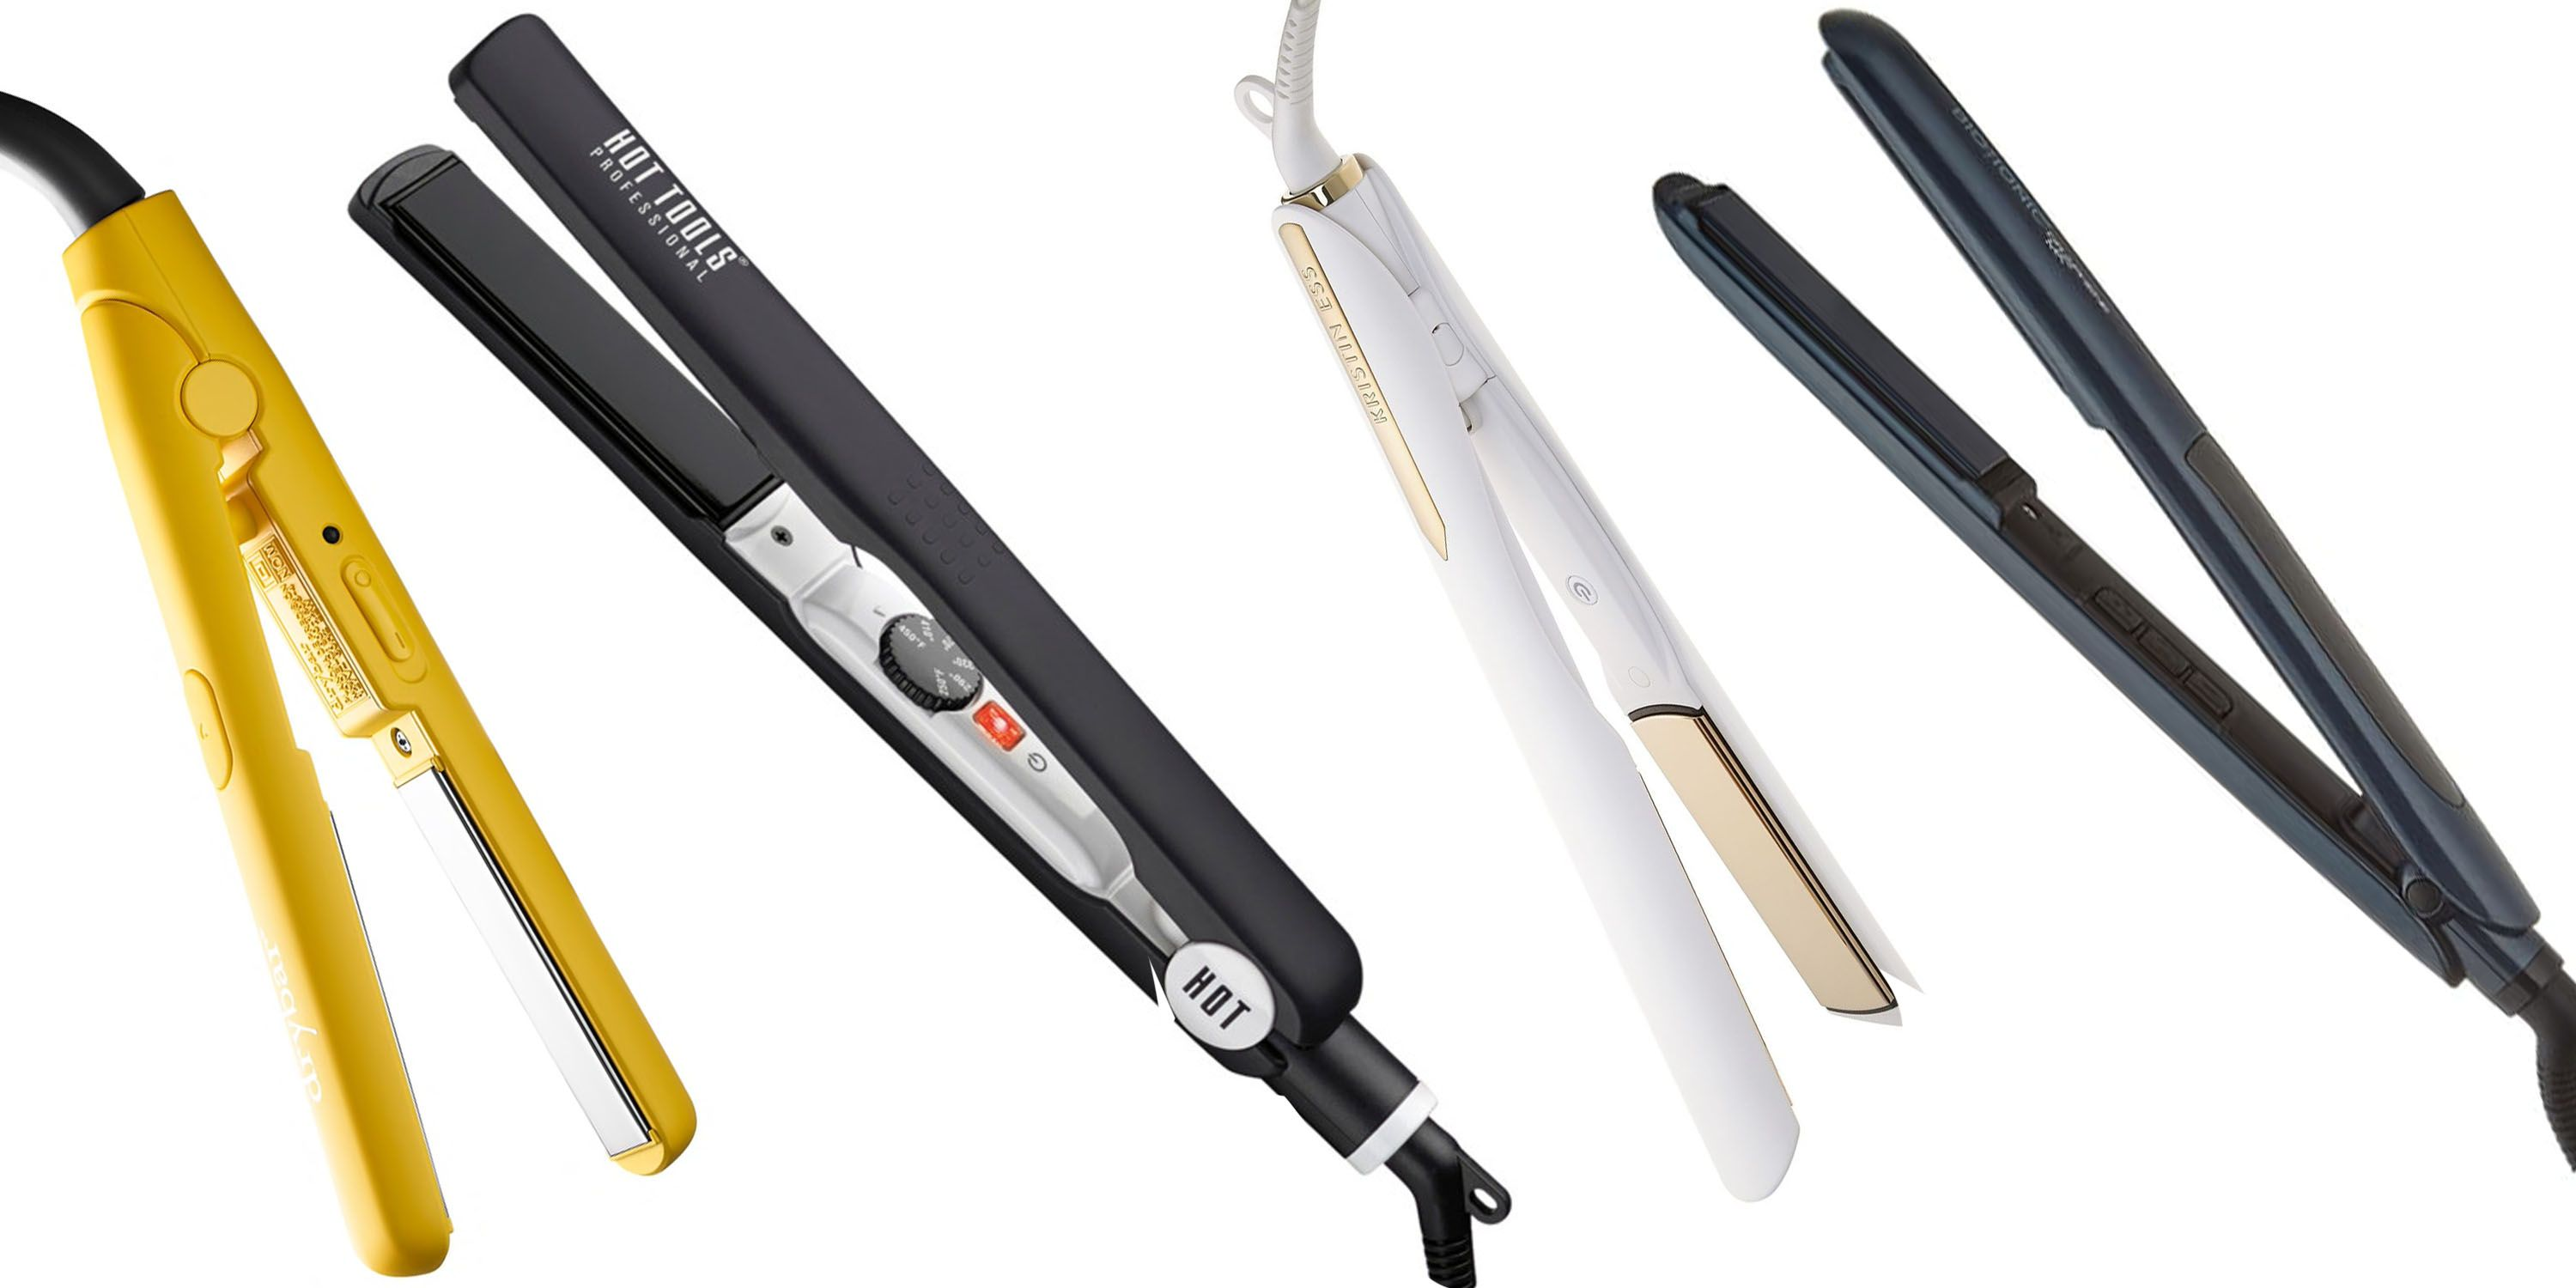 10 Best Flat Irons For Healthy Hair Flat Irons That Won T Damage